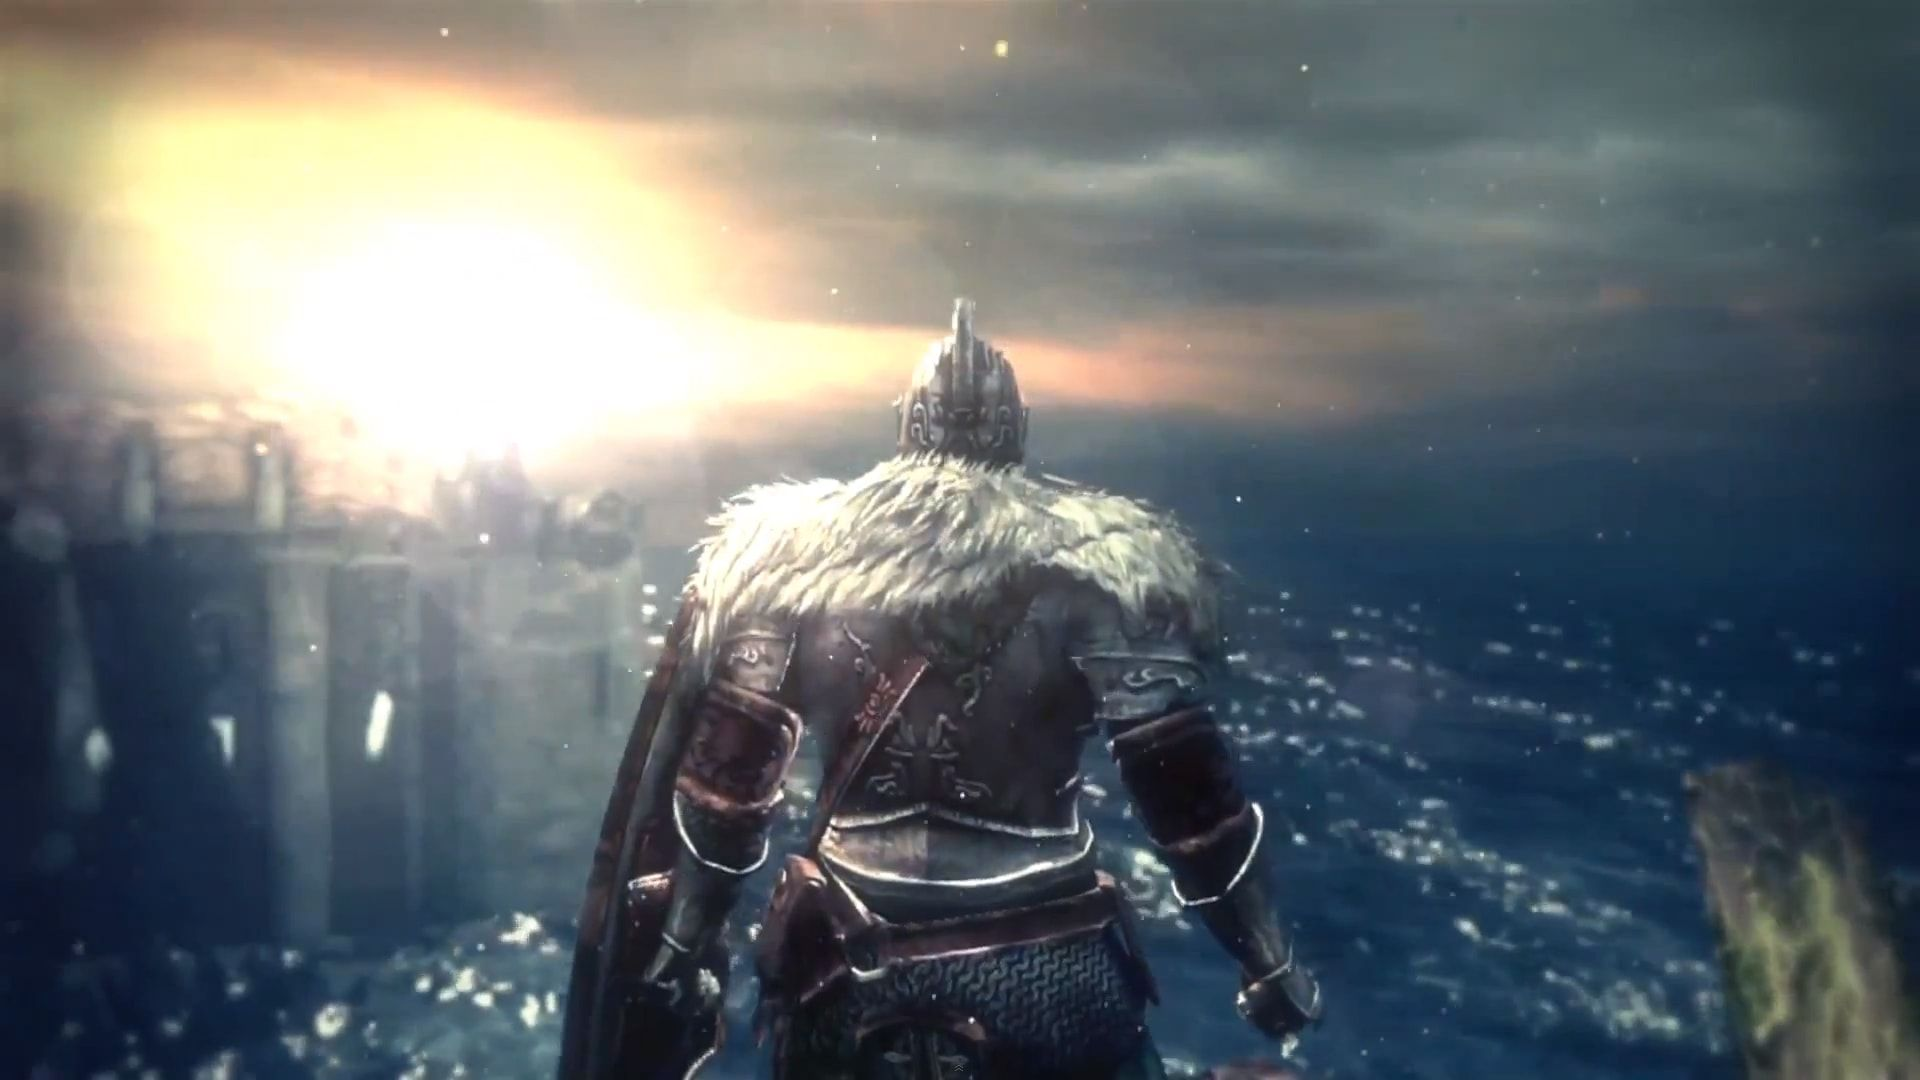 Dark Souls 2 Phone Wallpapers Top Free Dark Souls 2 Phone